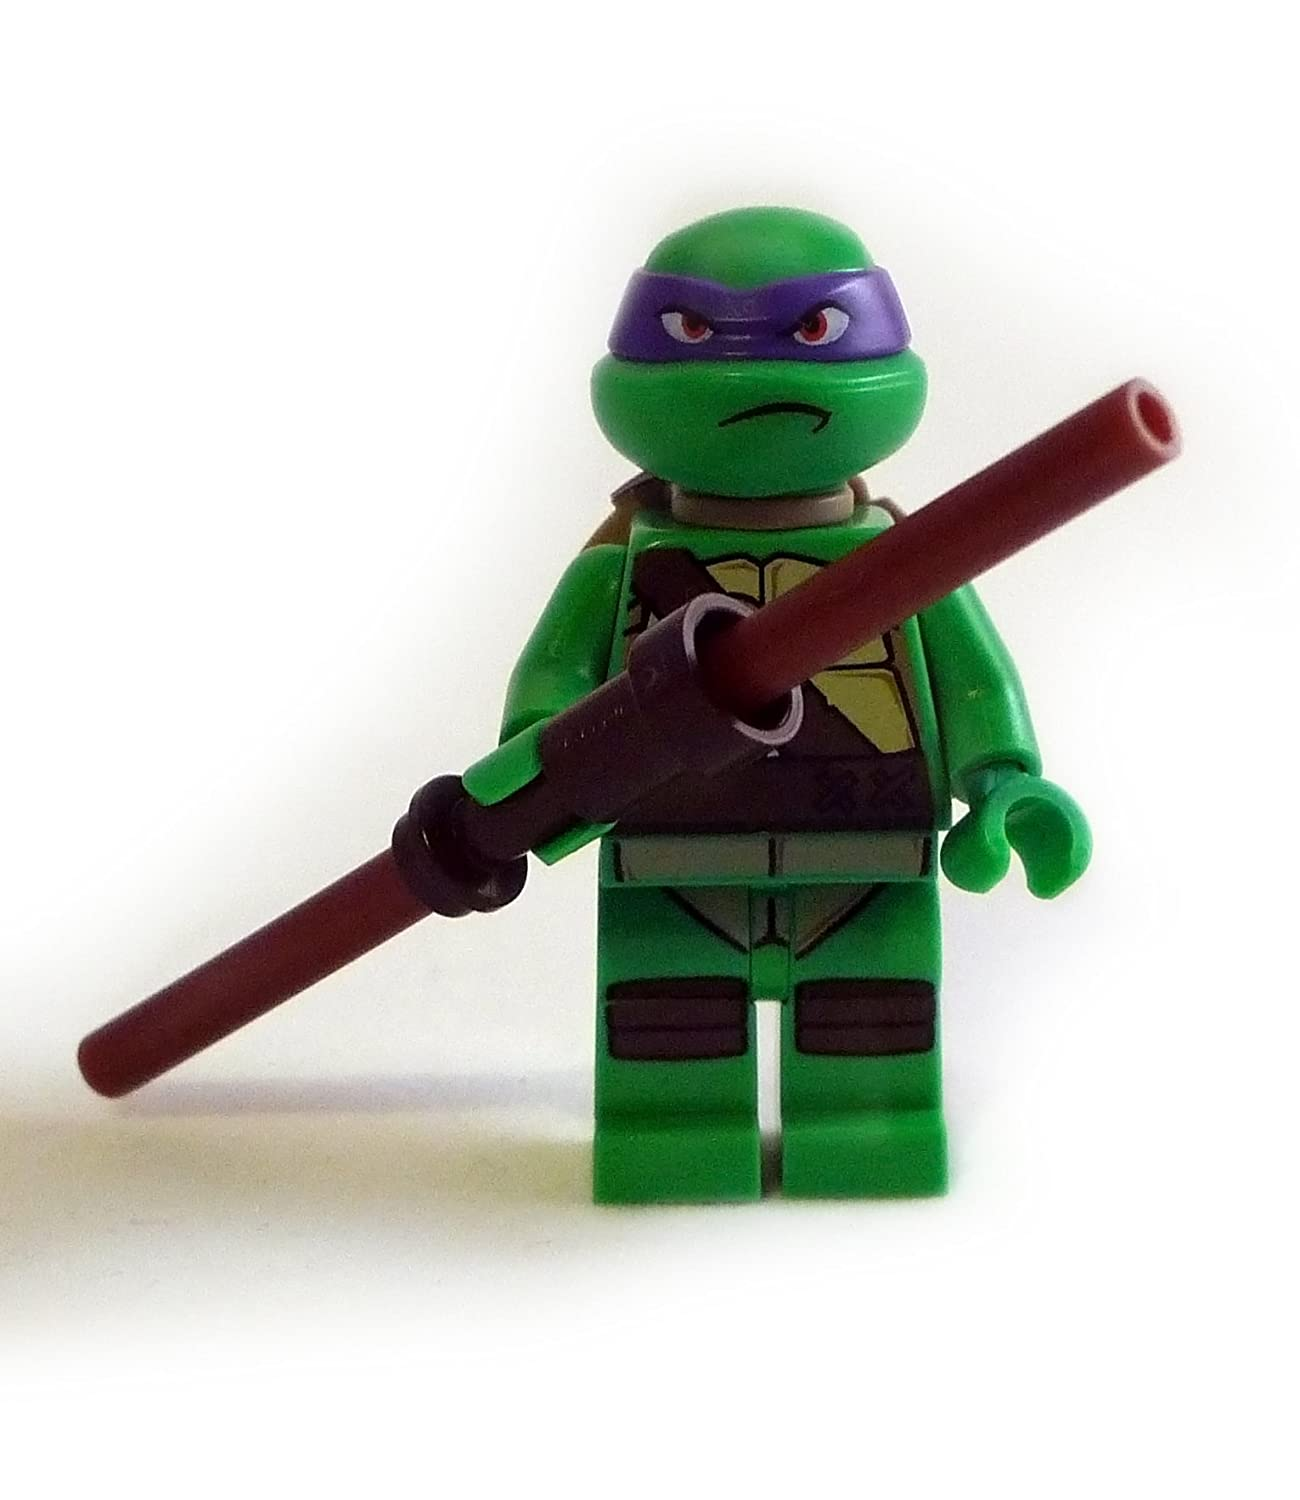 Lego Teenage Mutant Ninja Turtles Donatello Minifigure